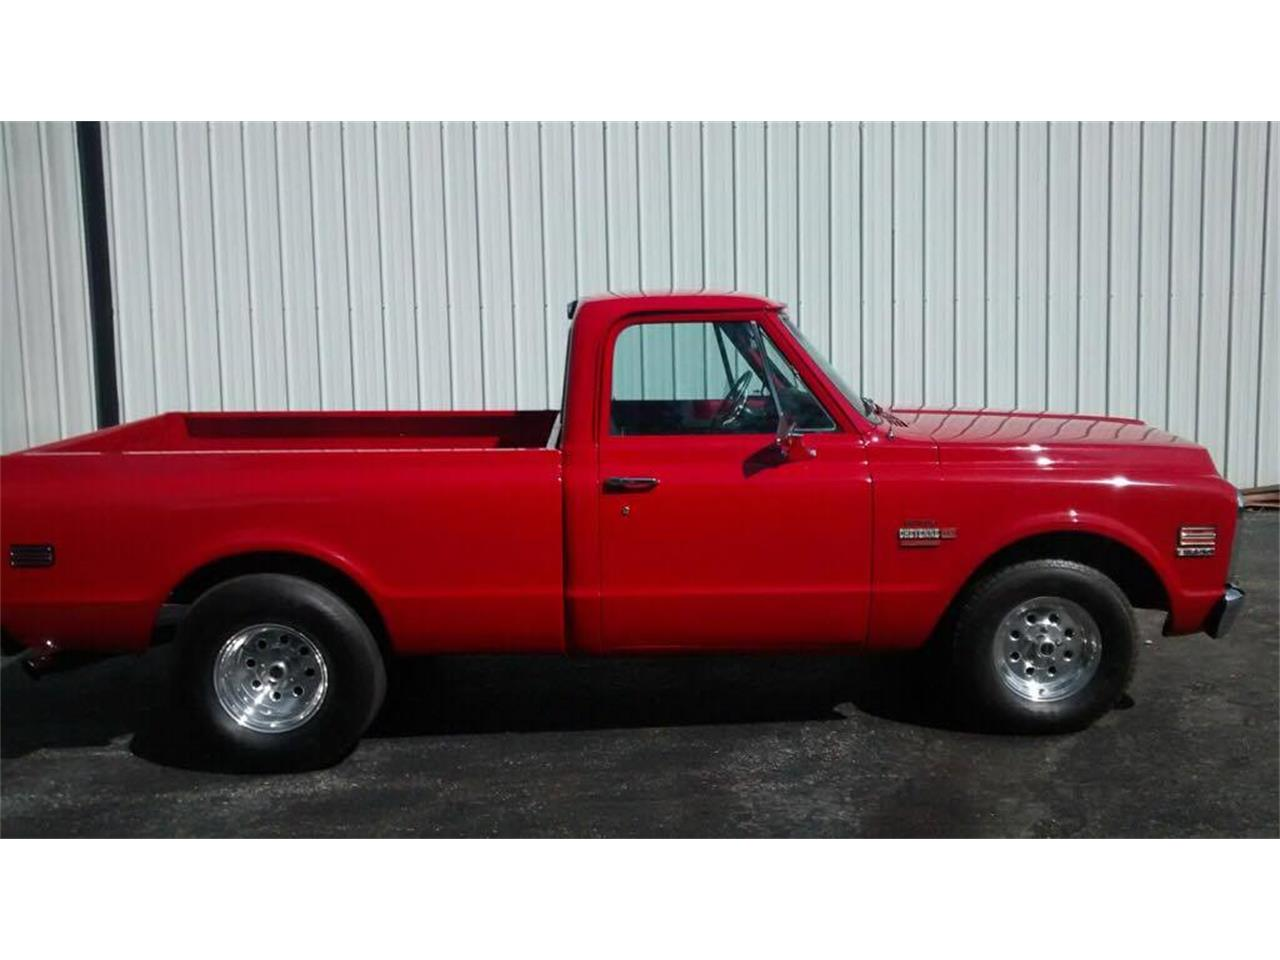 Large Picture of 1971 Chevrolet Cheyenne located in Kentucky - $40,000.00 - LSTS